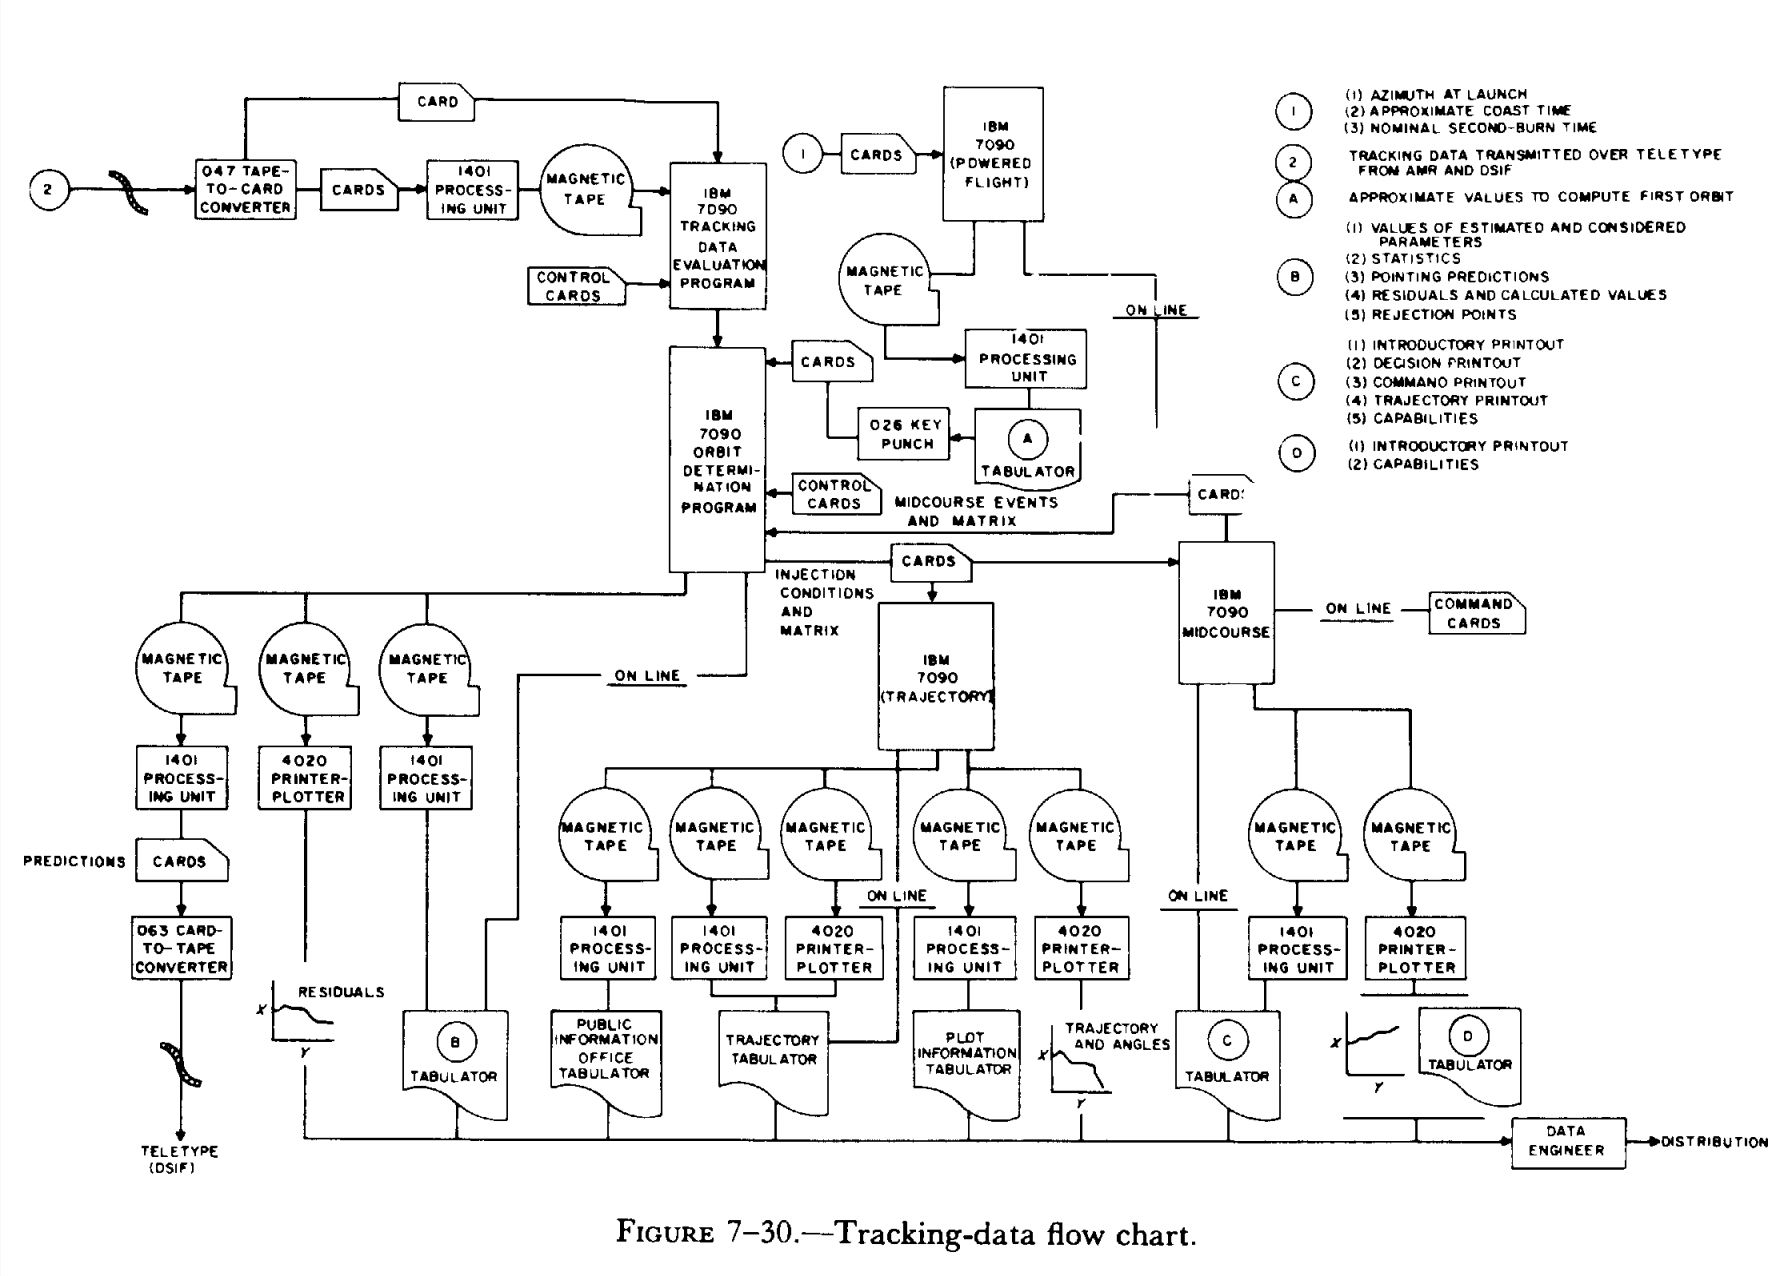 All Unit Conversion Chart: Tracking-data flow chart.jpg - Wikimedia Commons,Chart